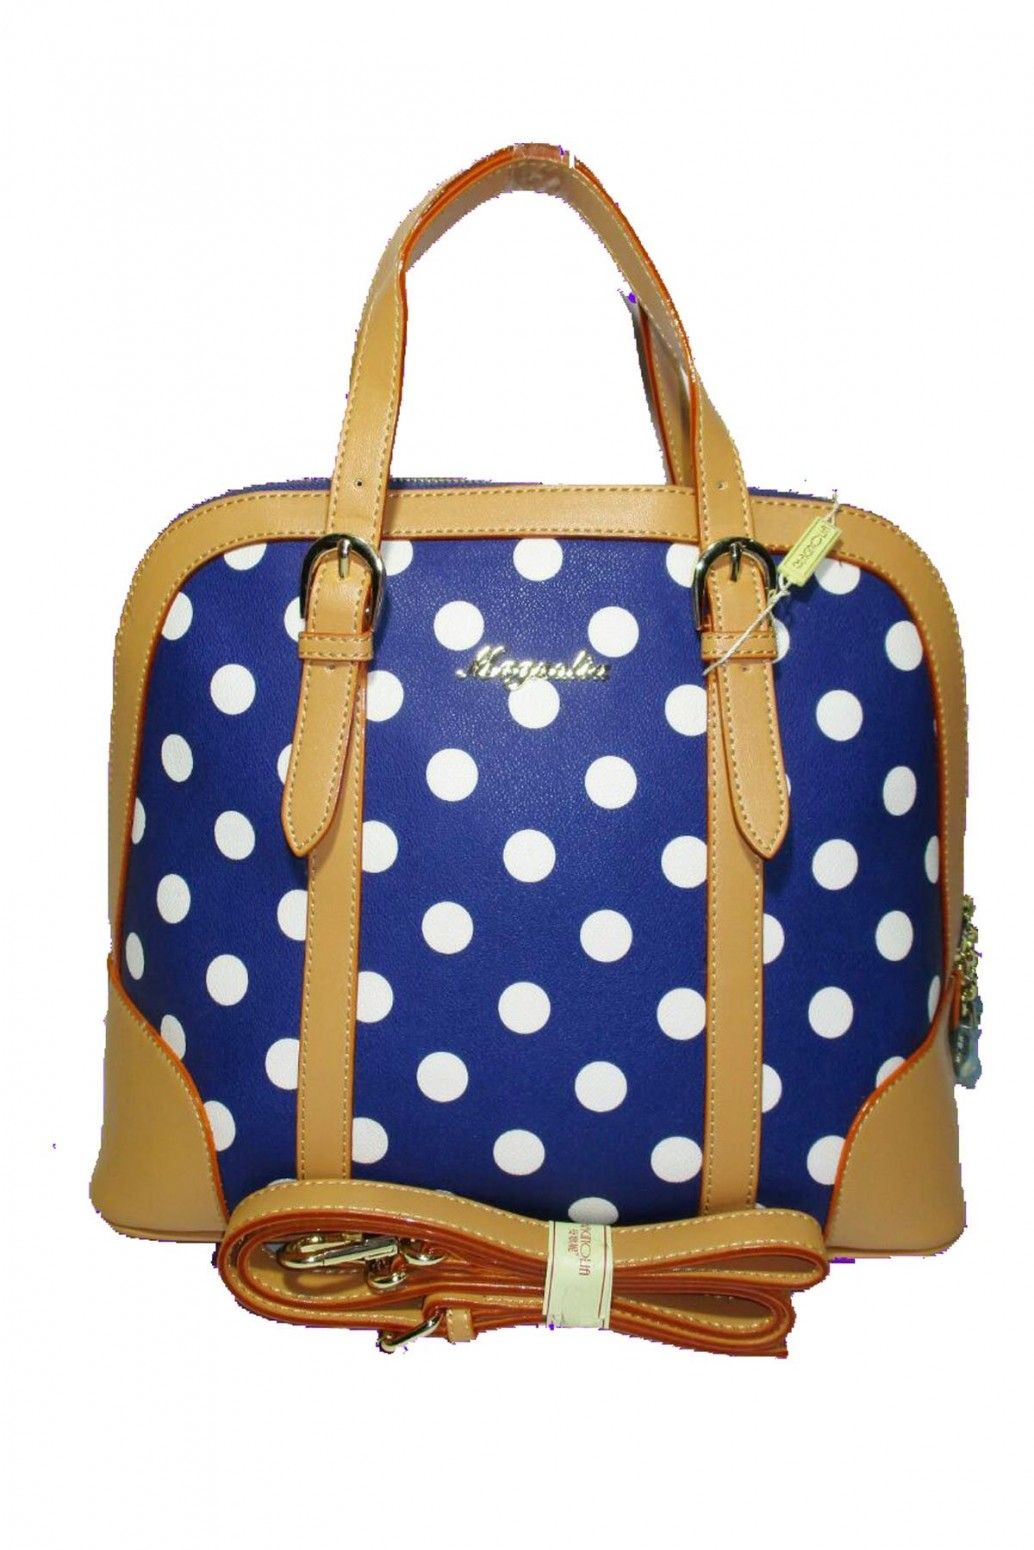 New Blue Colored Imported Handbag Online At Low Prices In India On Winsant